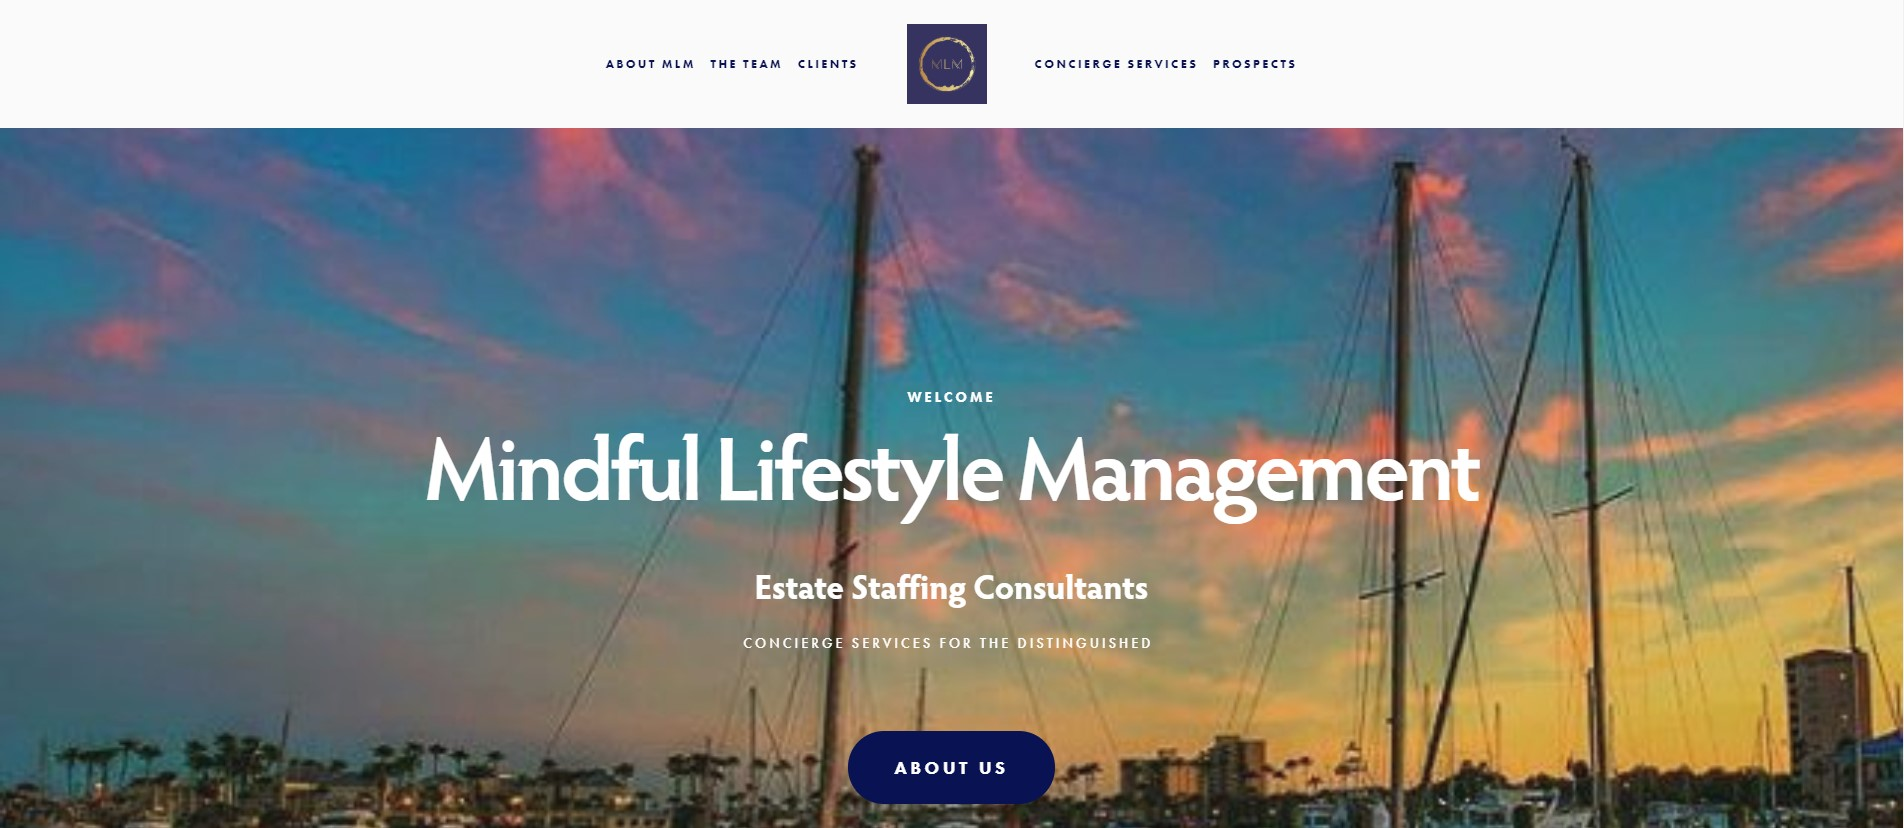 Mindful lifestyle management in NYC